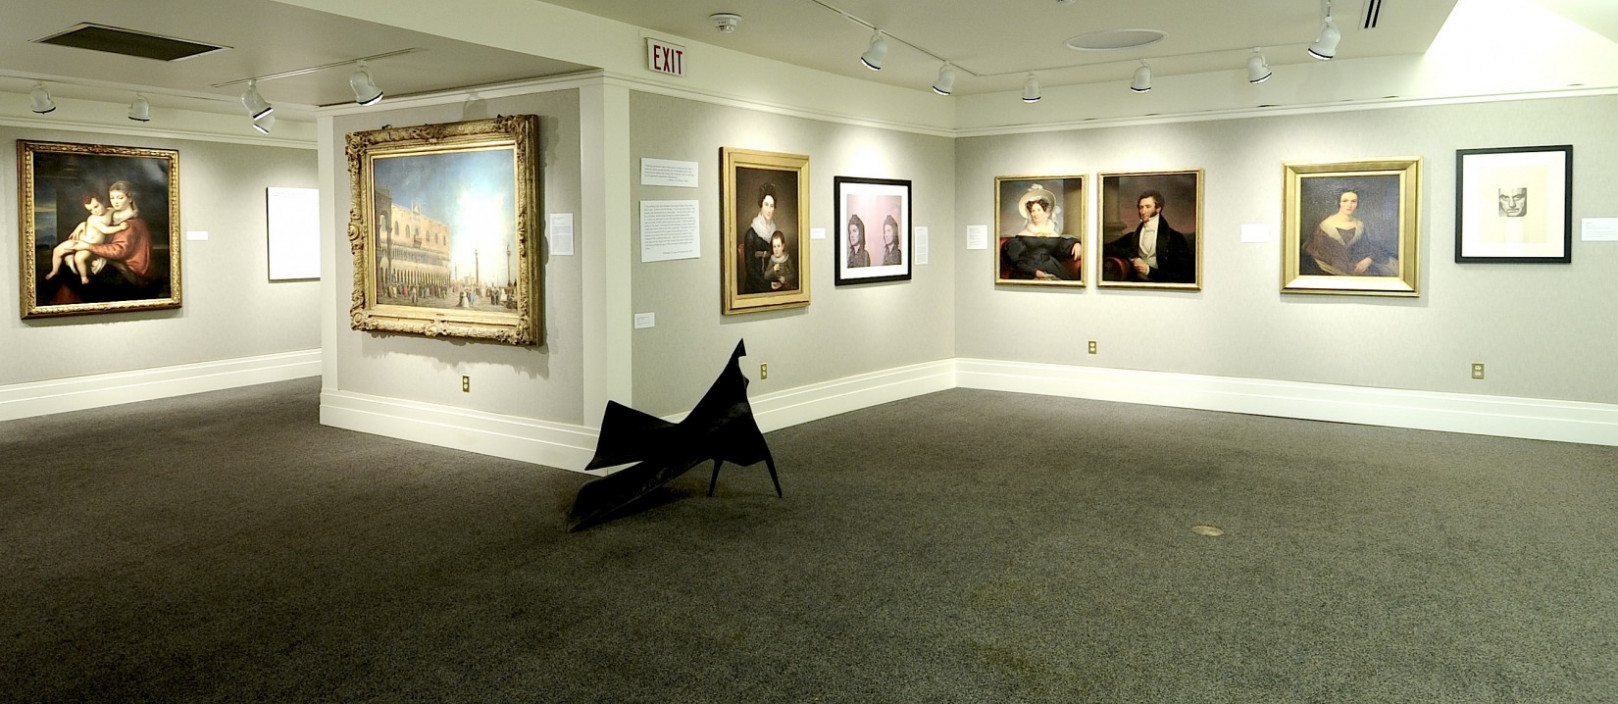 Installation view. Holding the Eyes and Soul: Object and Viewer in 2012.  February 15, 2012 – April 1, 2012.